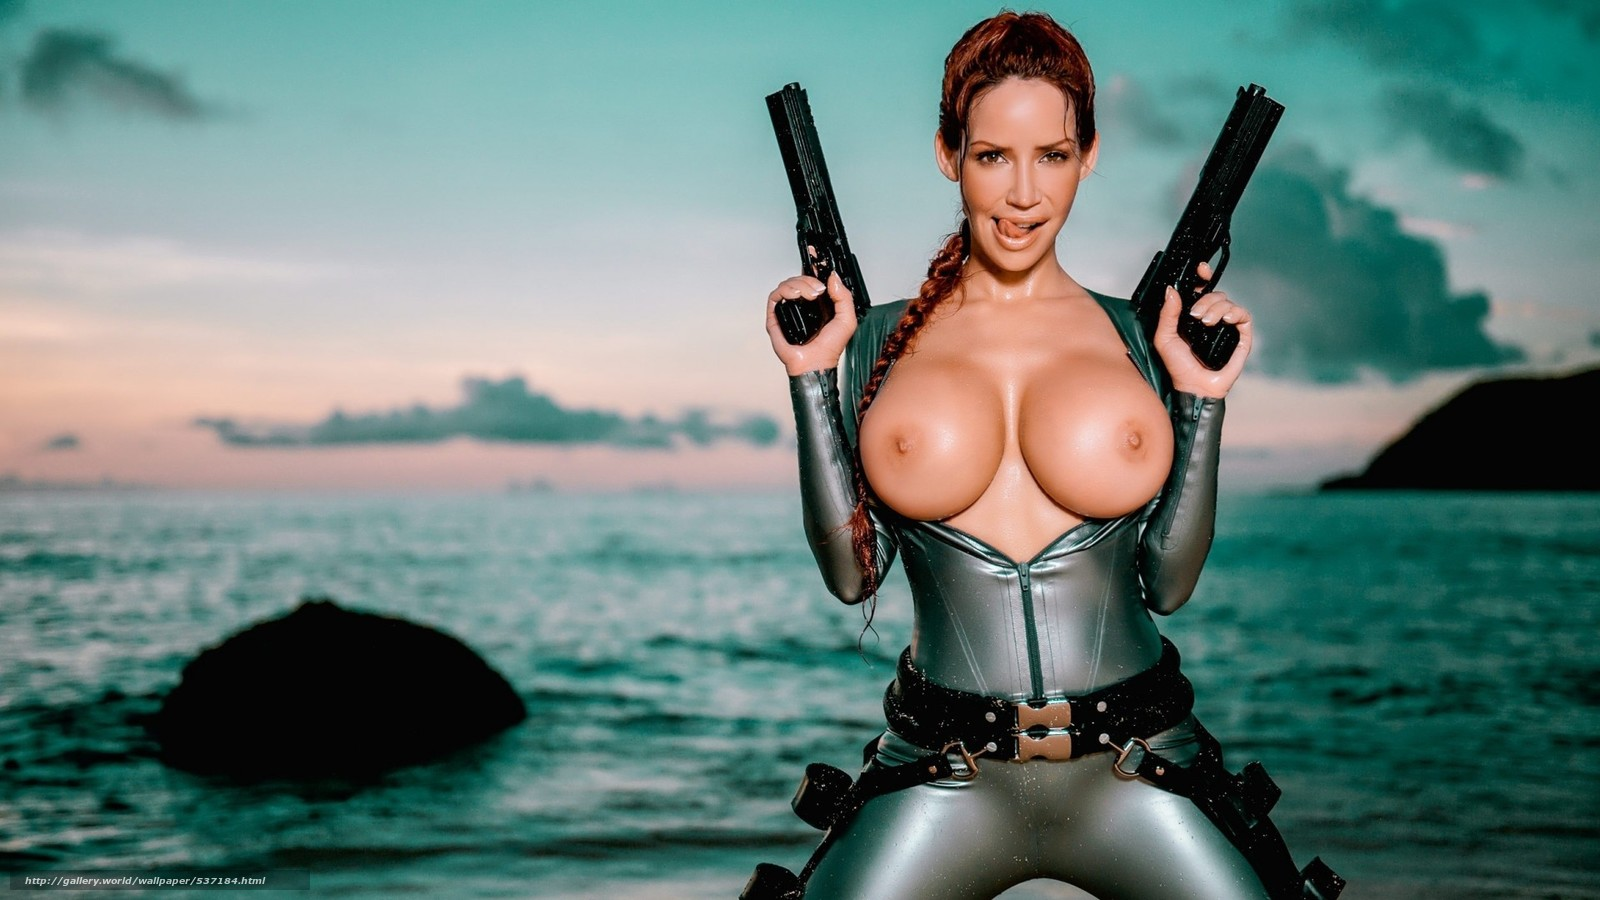 Lara croft wet tits erotic movies